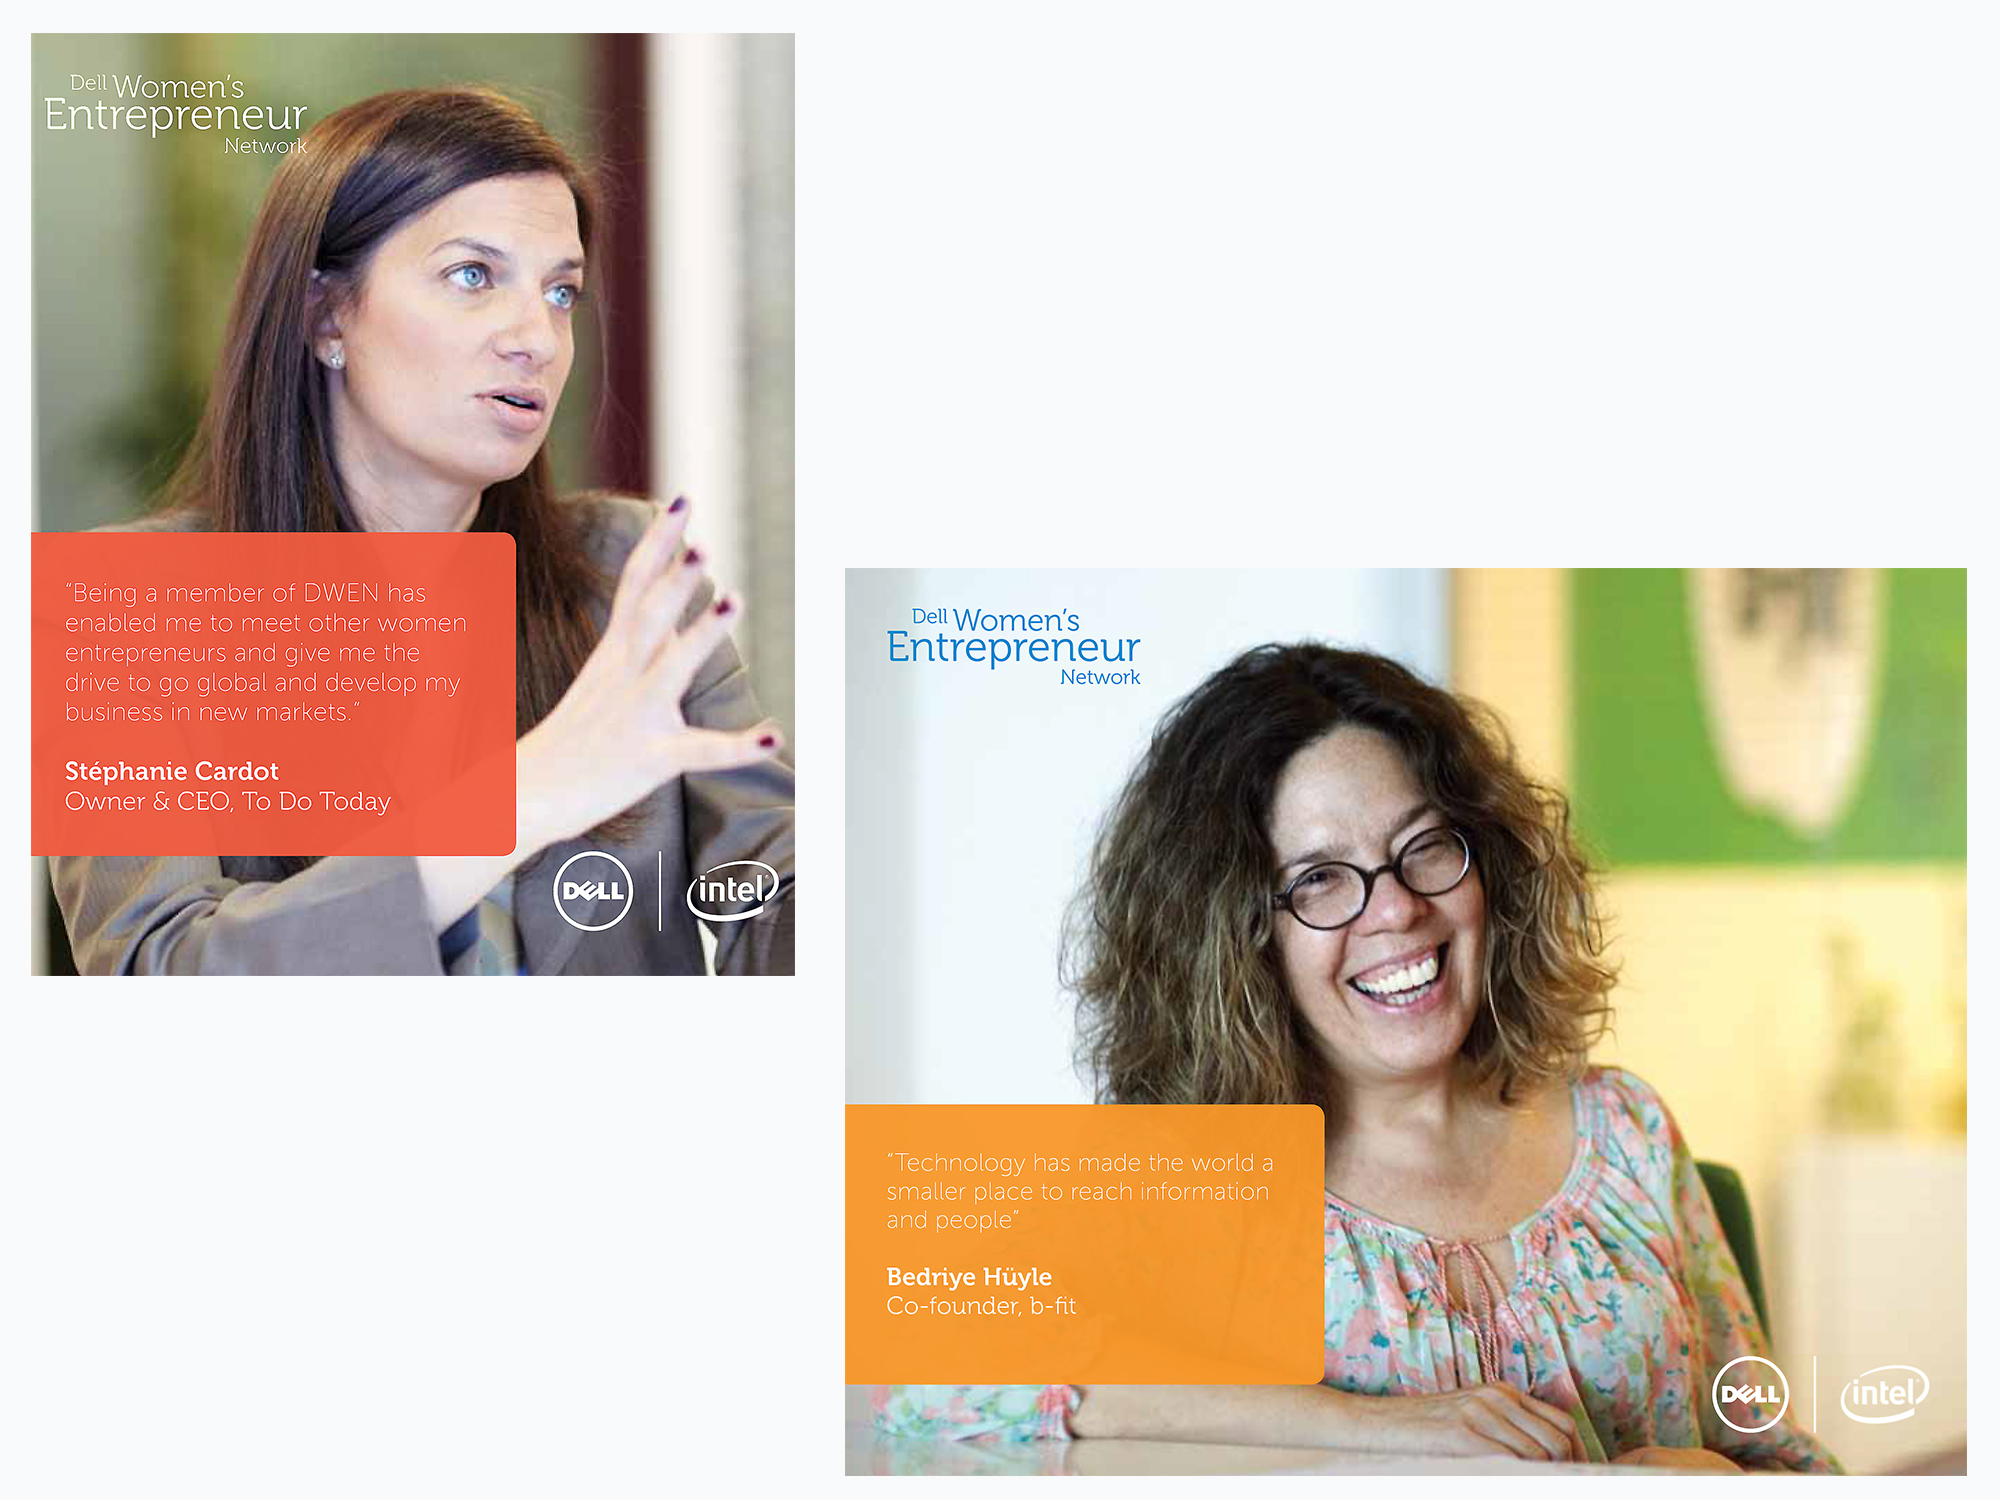 Female entrepreneurs and Dell brand ambassadors shot in Paris and Istanbul